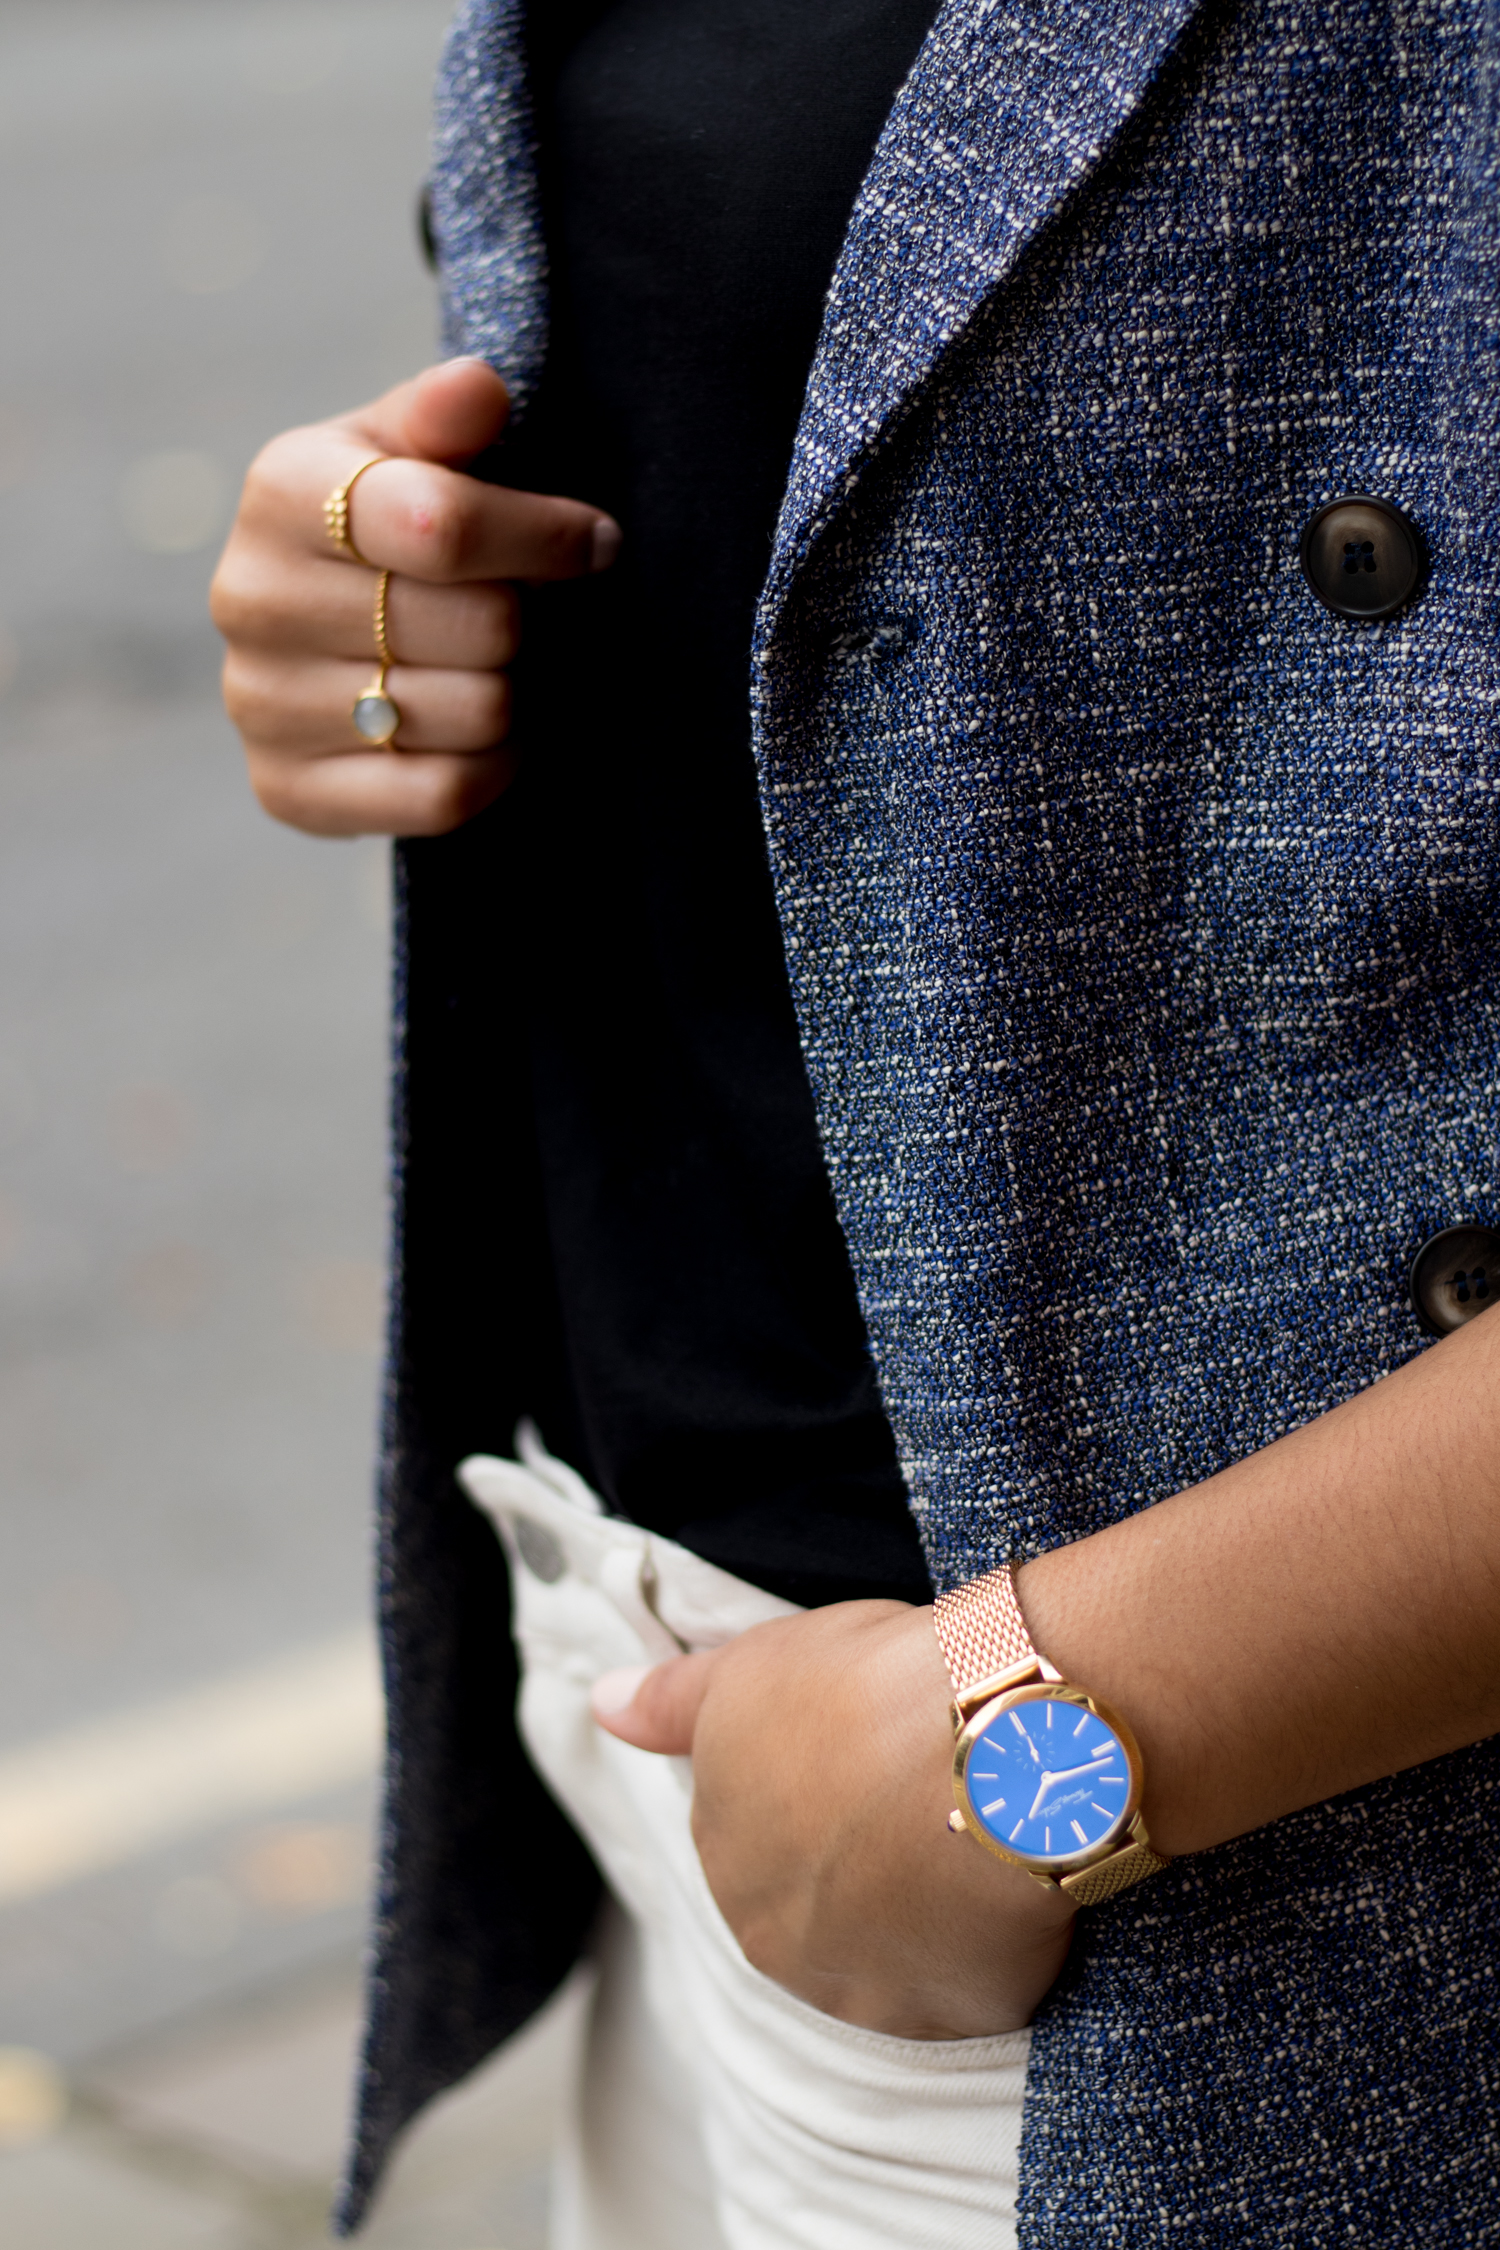 Thomas Sabo Gold Watch with Blue and Pernille Corydon Gold Rings